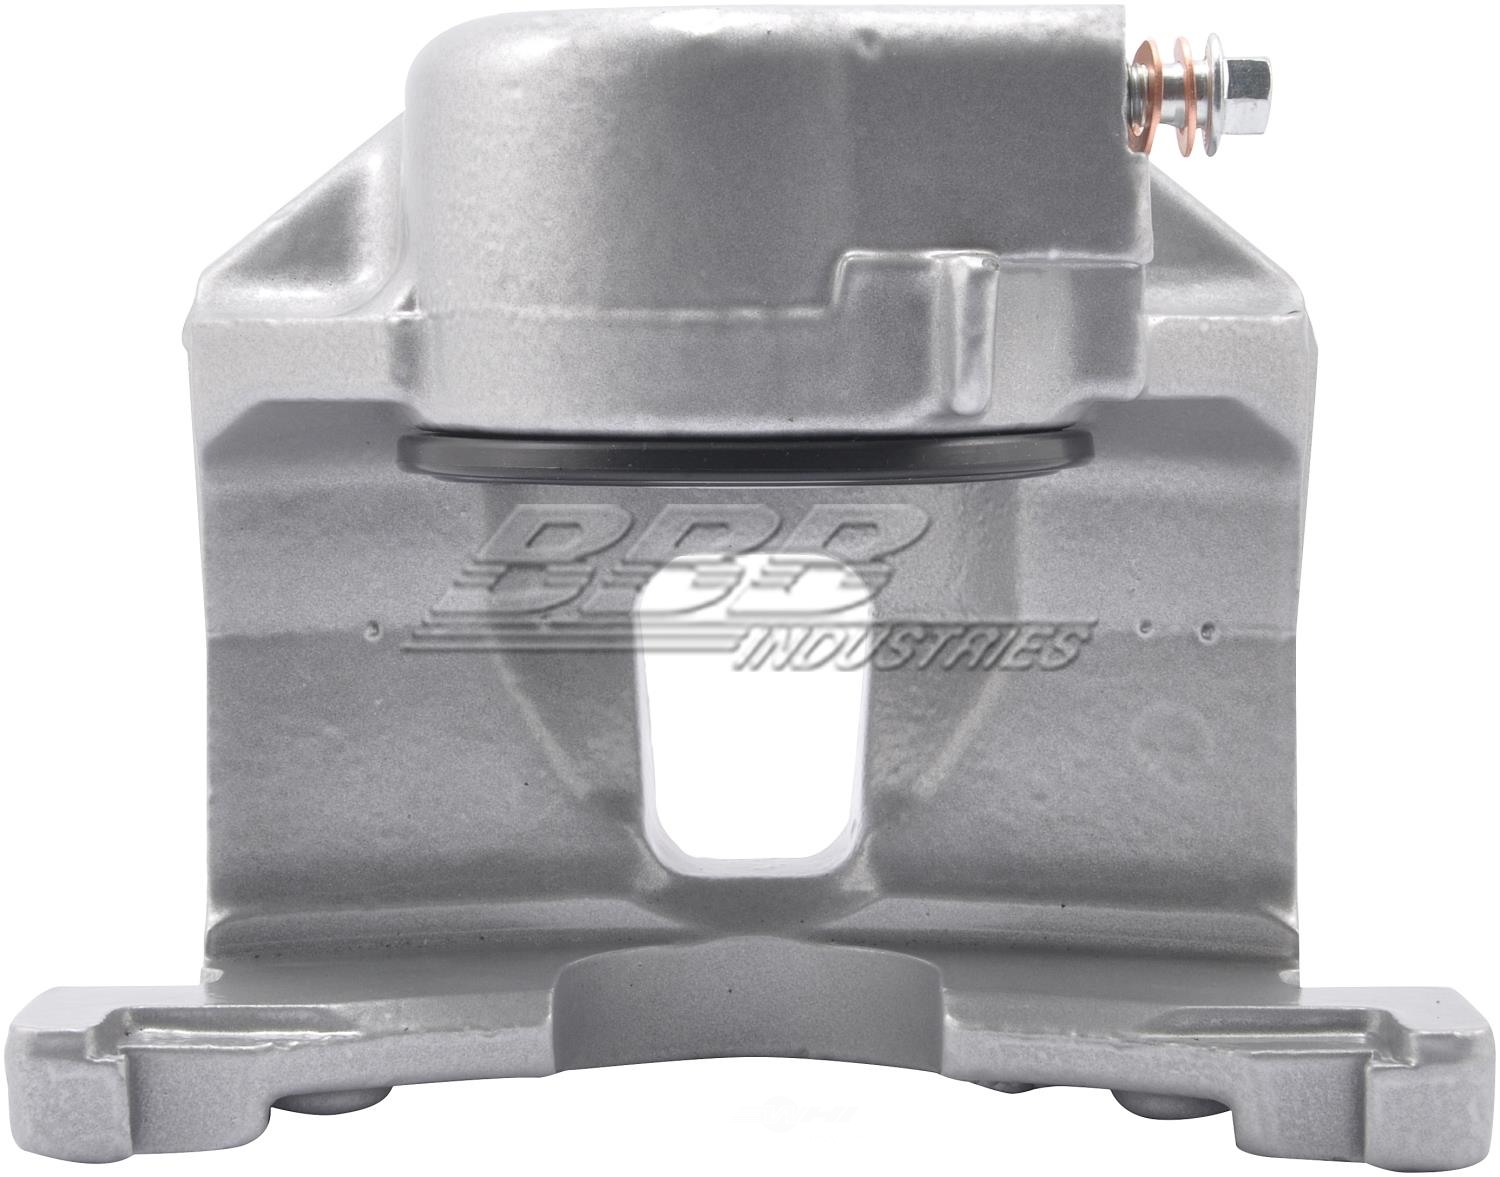 BBB INDUSTRIES - Reman Caliper W/installation Hardware - BBA 97-17632B